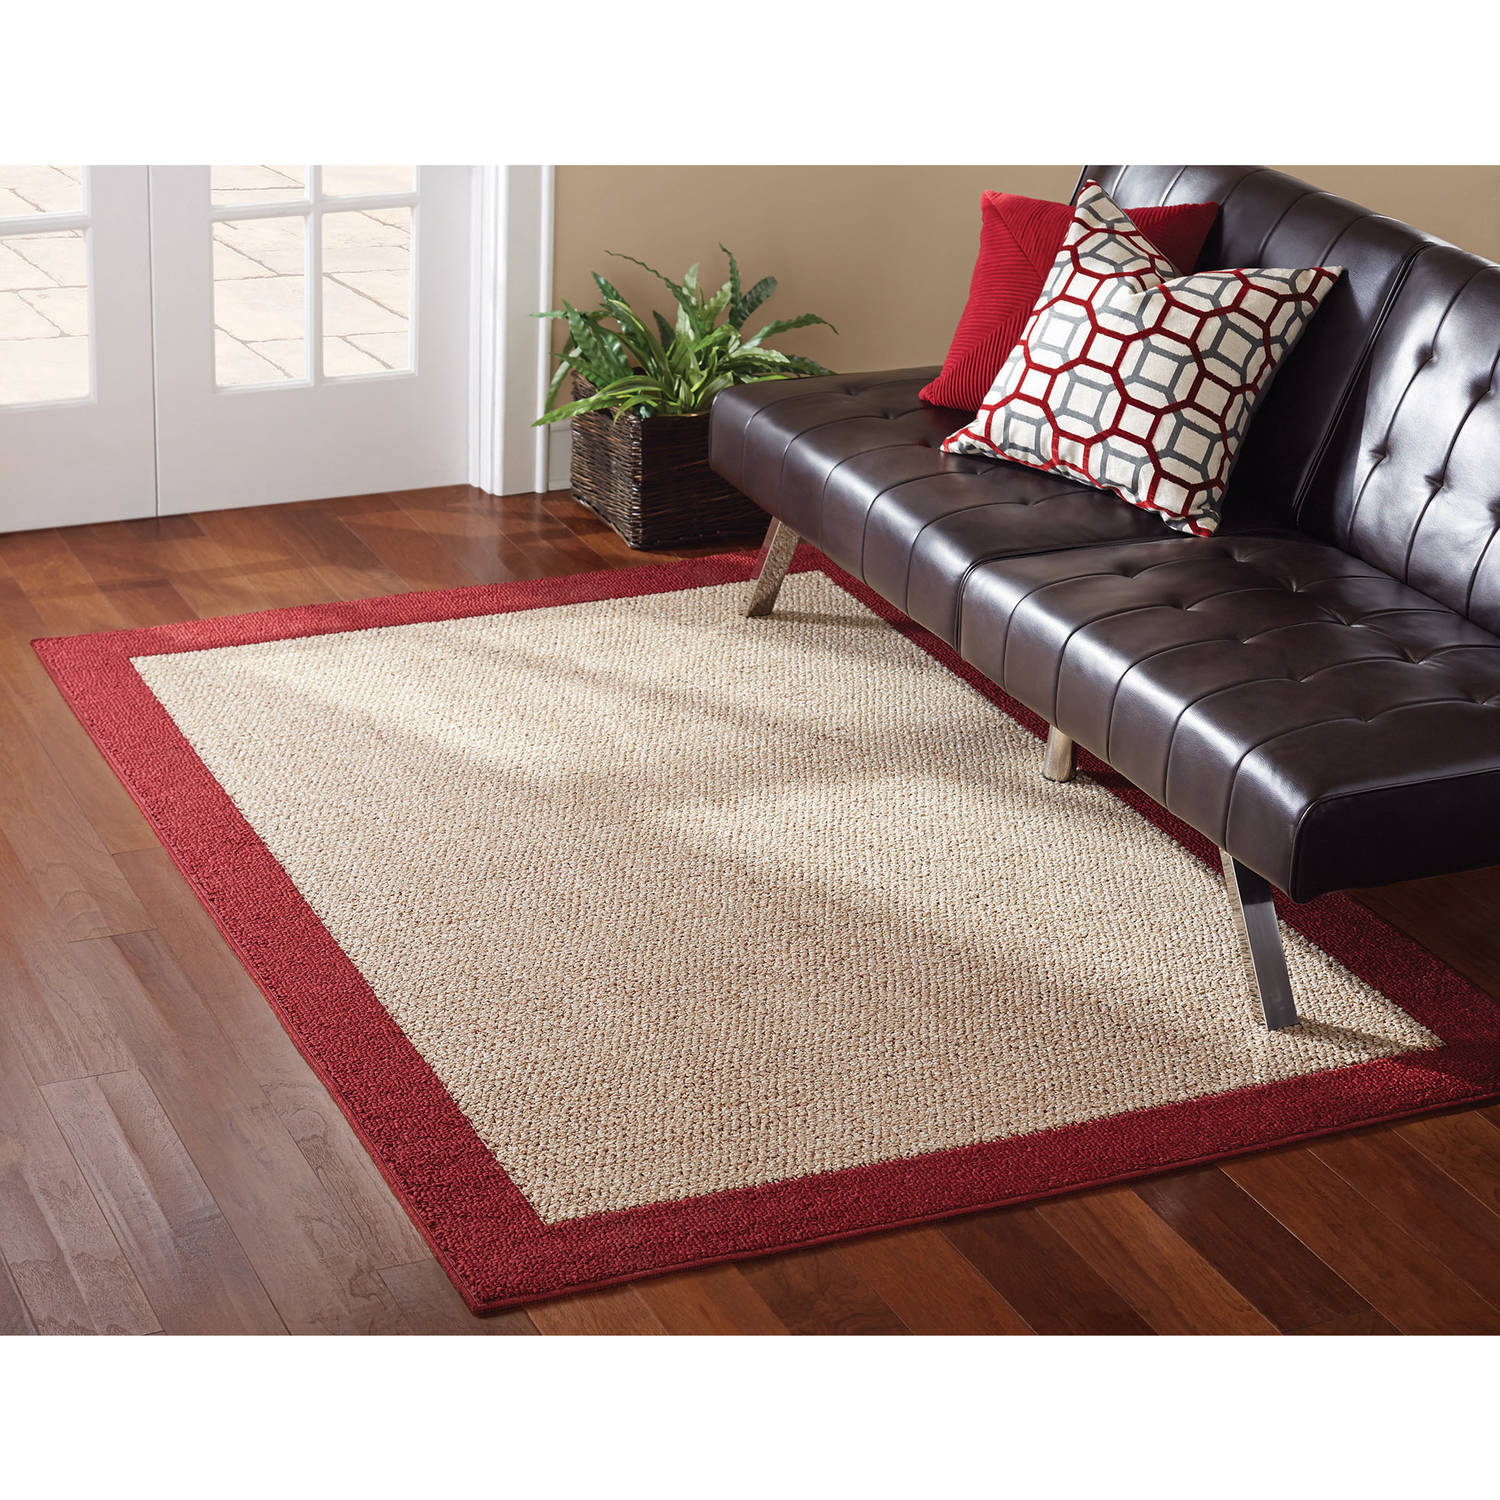 Mainstays Faux Sisal 3 Piece Area Rug Set Ebay